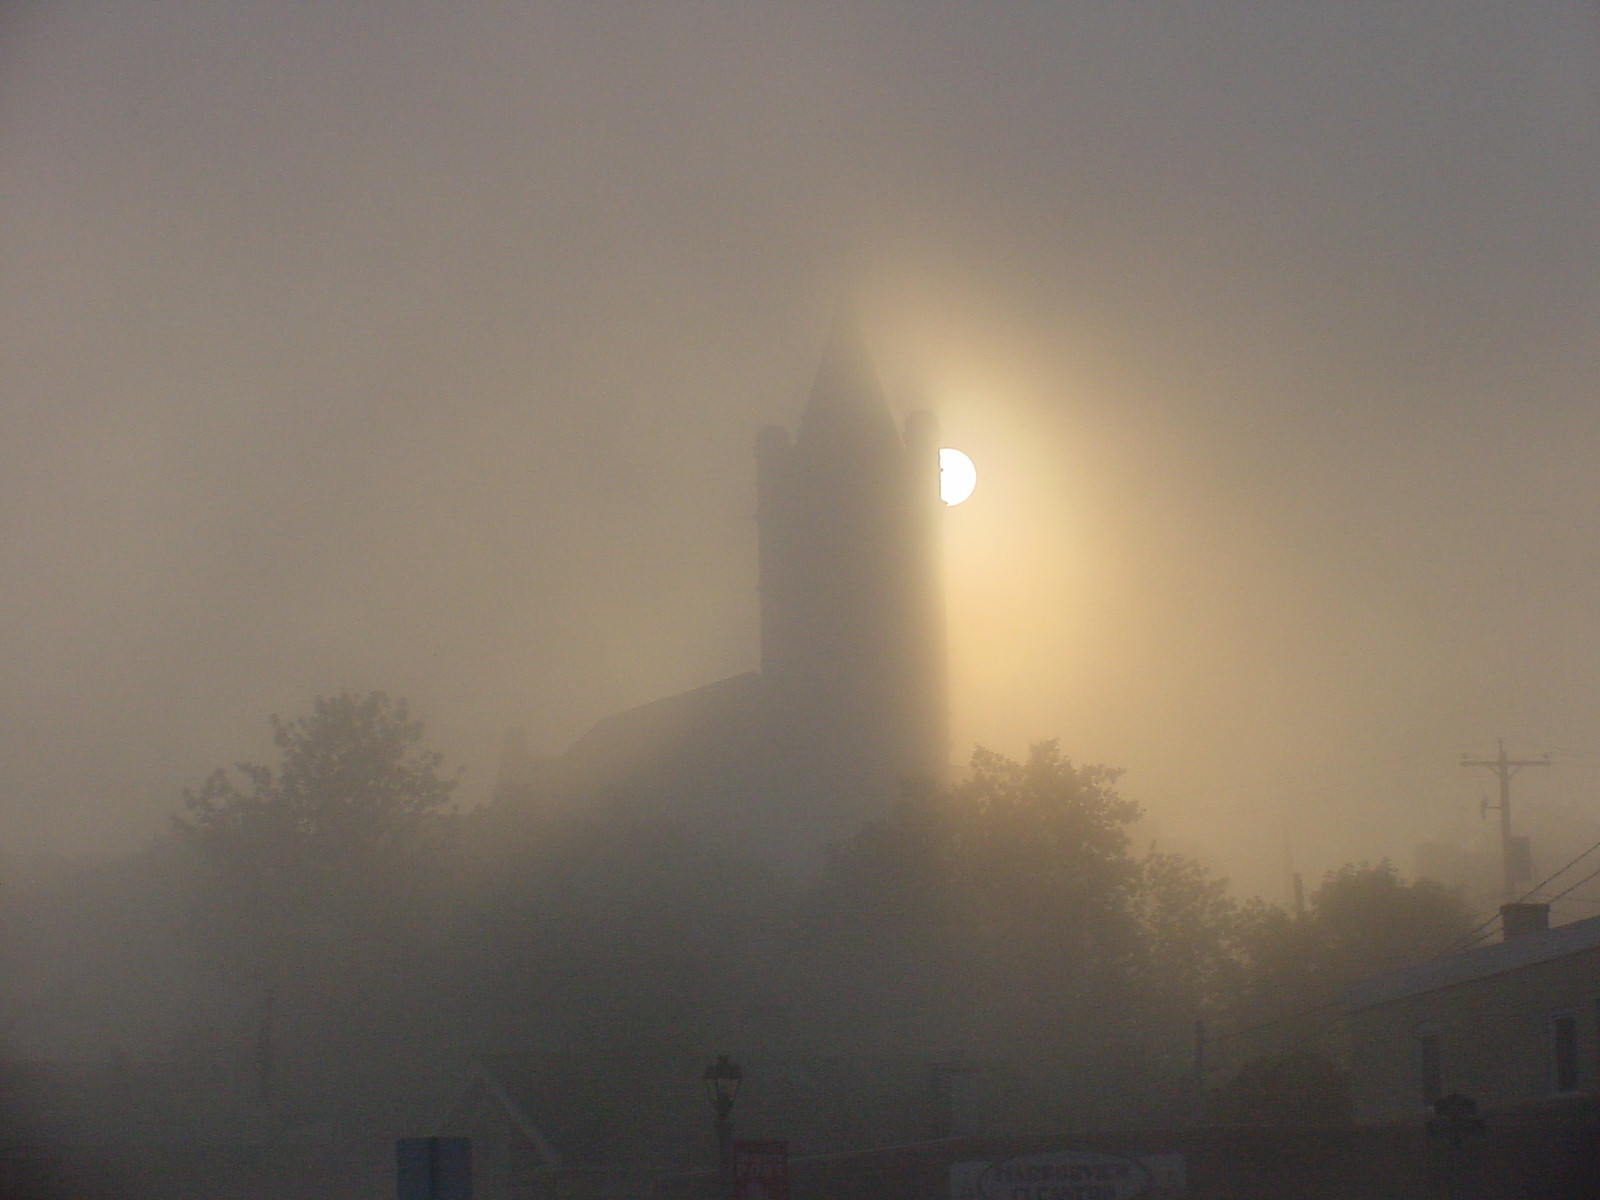 The Courthouse in the Fog